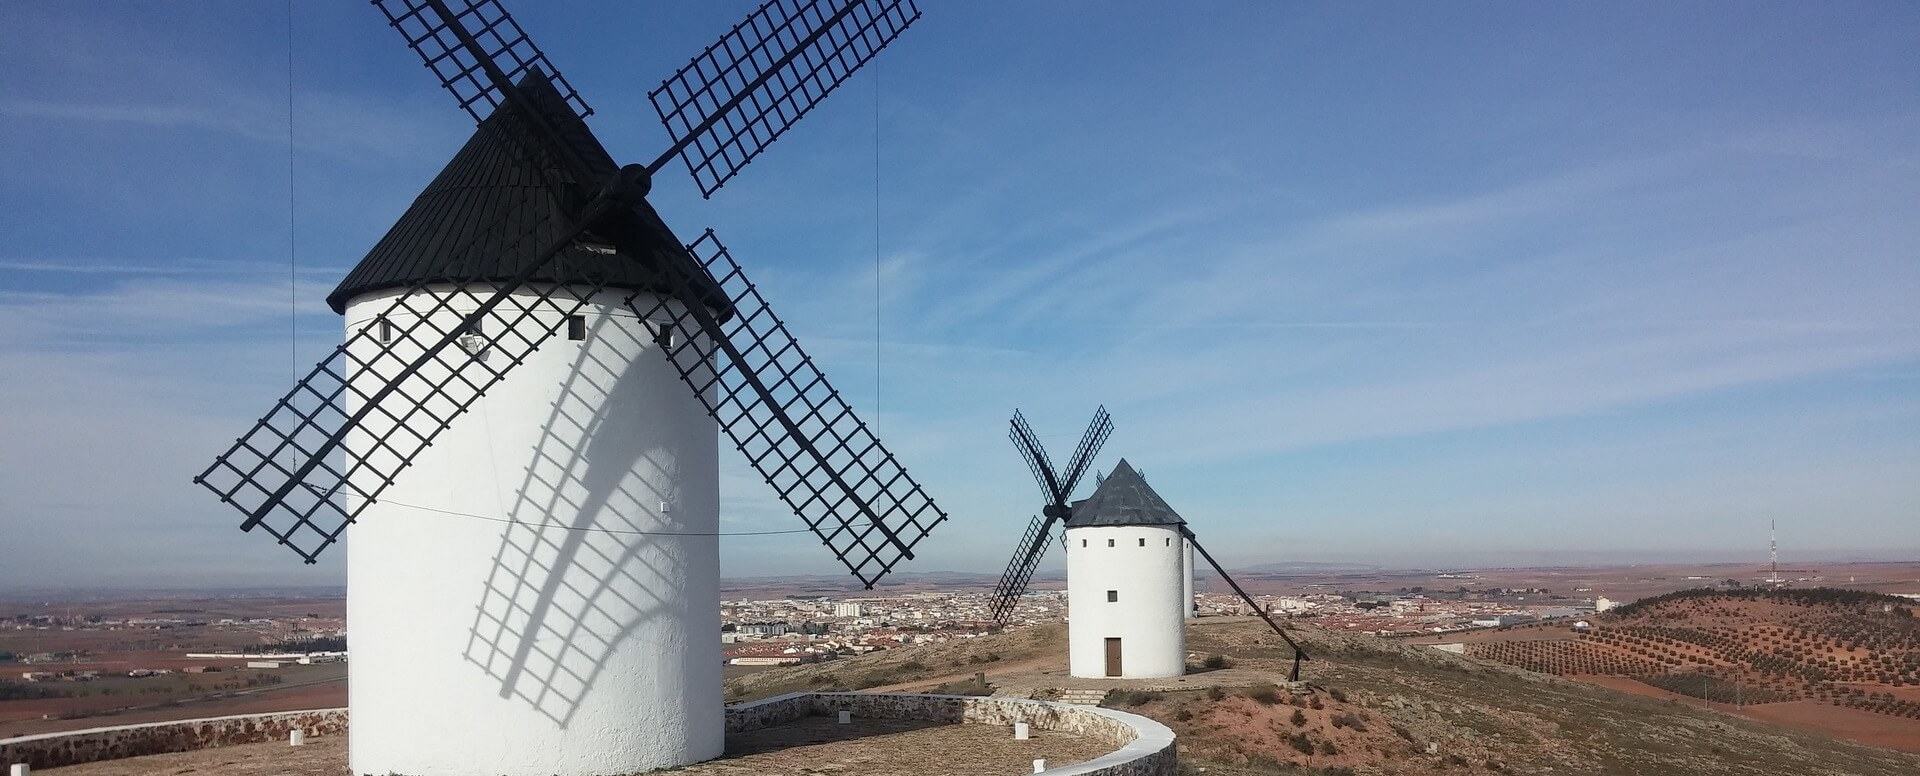 Take the Route of Don Quixote - Spain